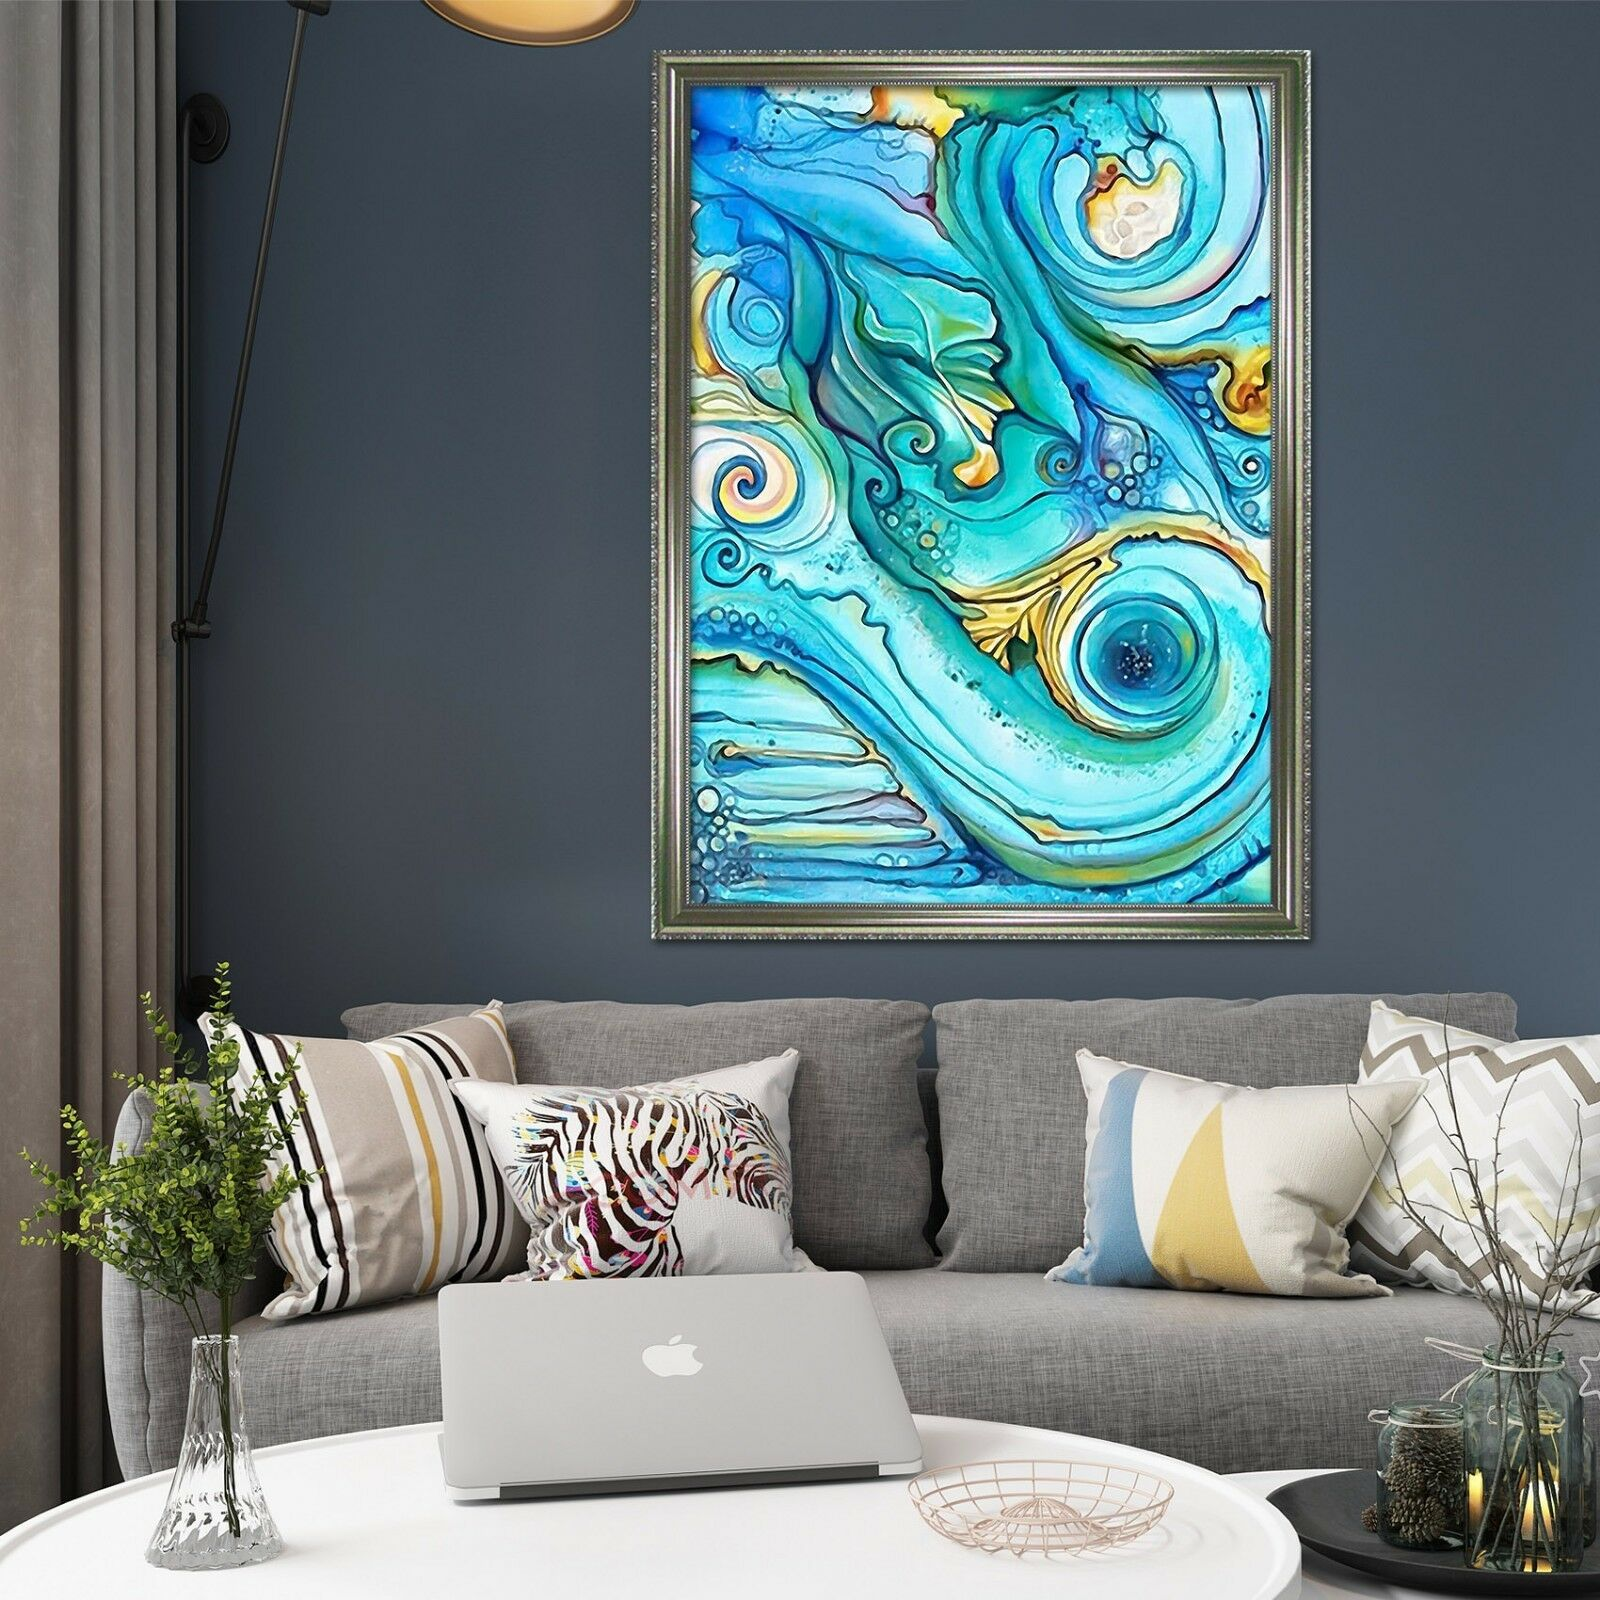 3D Blau Art Painting 8 Framed Poster Home Decor Print Painting Art AJ WALLPAPER